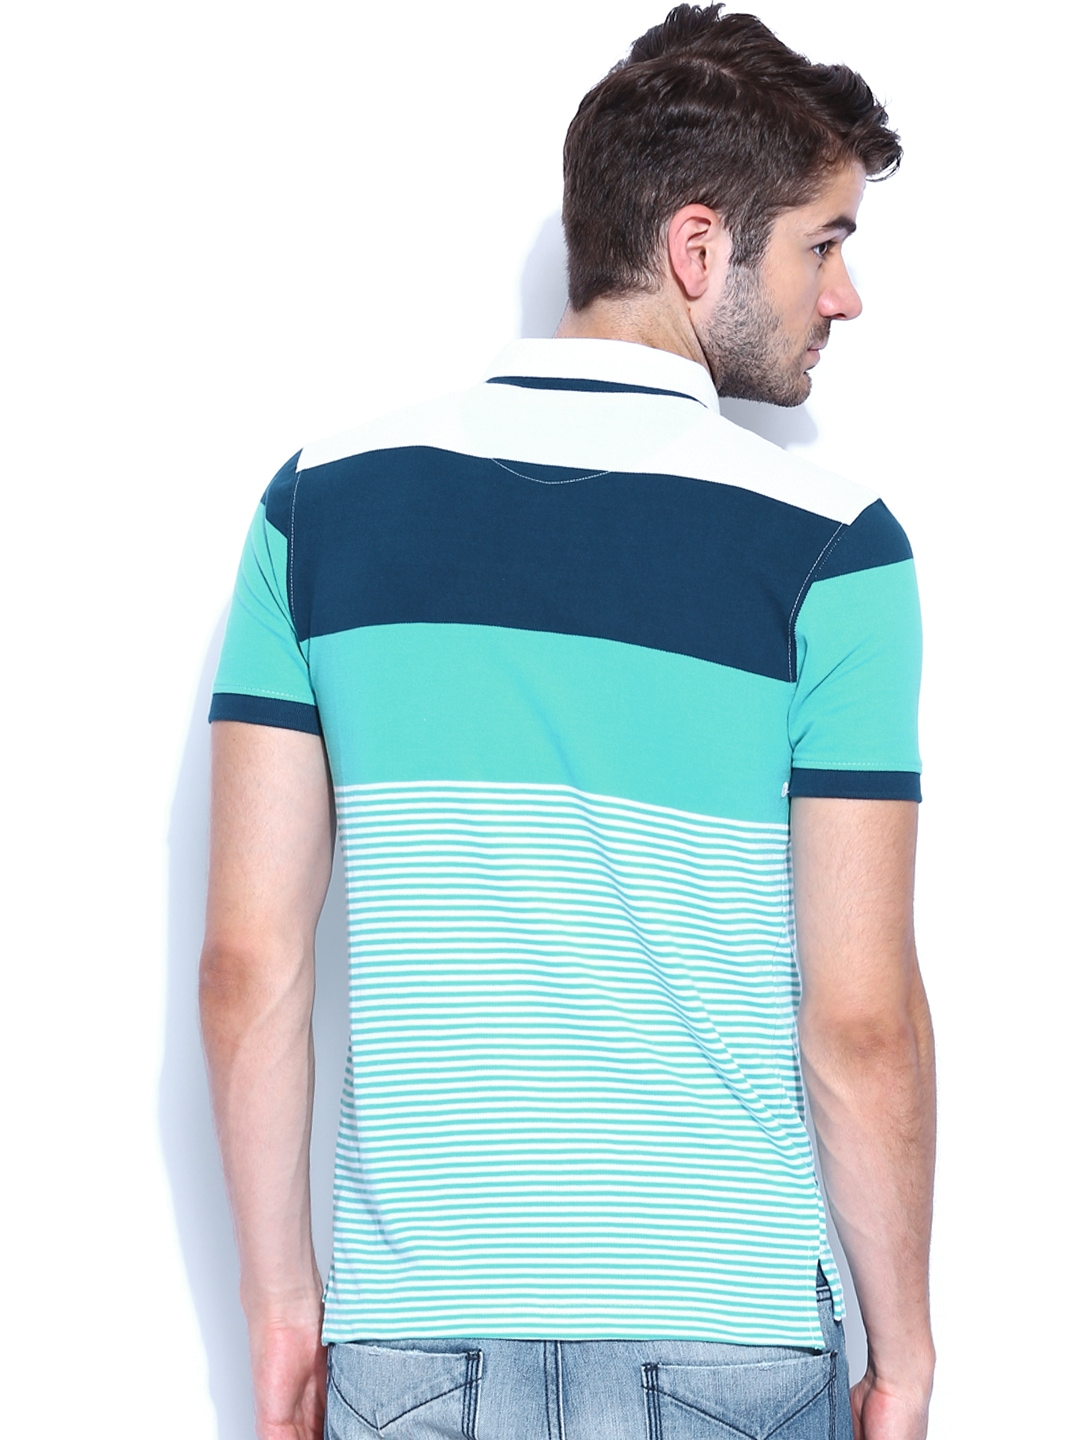 Myntra hrx men teal blue white striped polo t shirt for Mens teal polo shirt